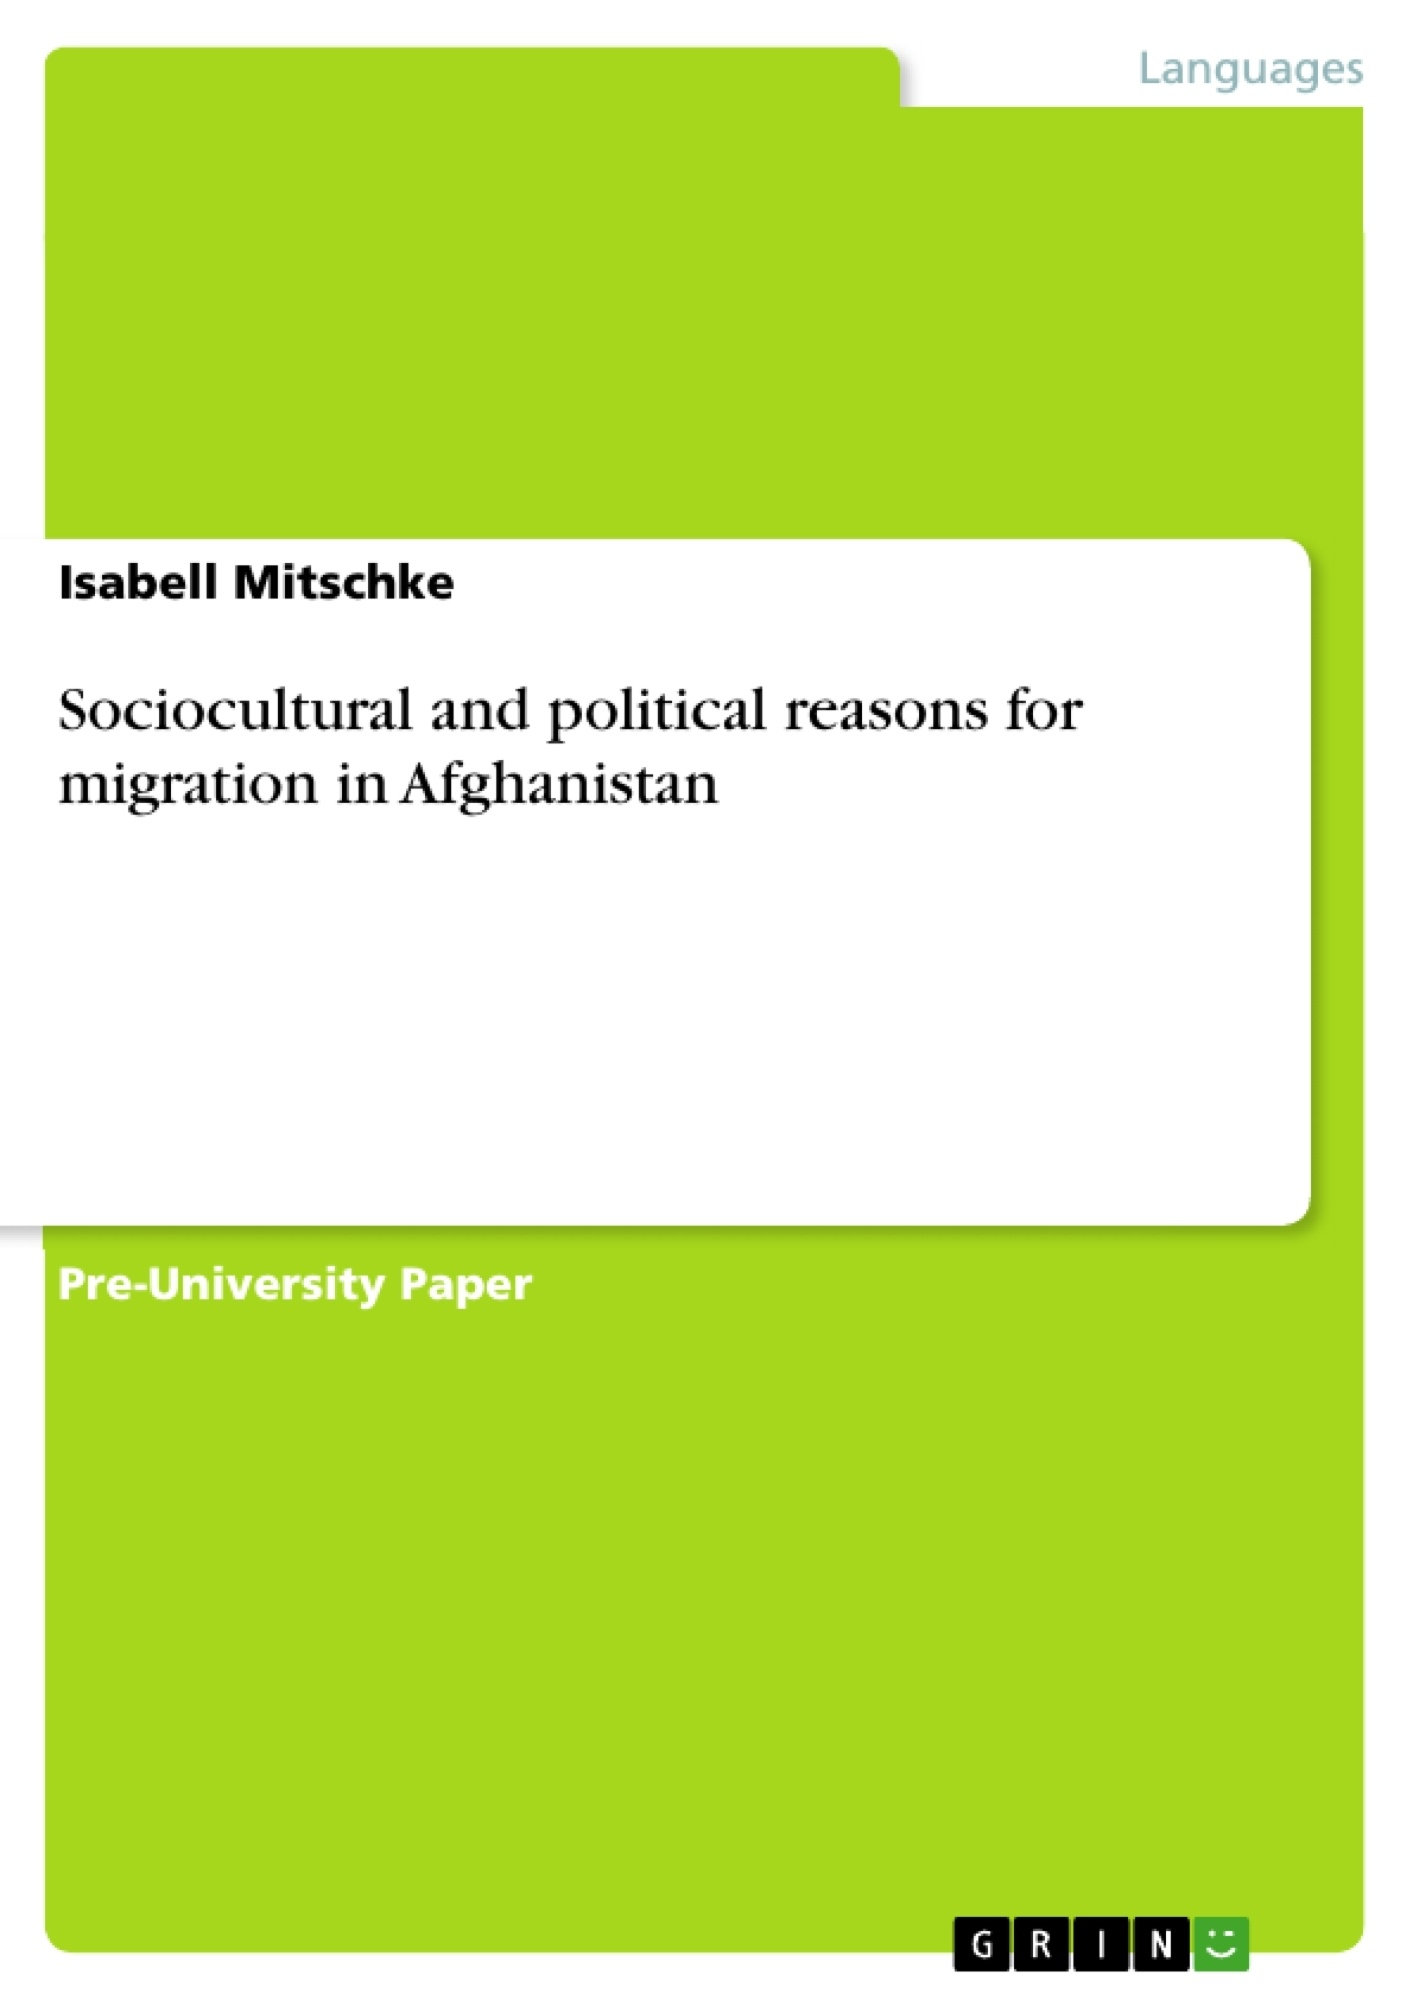 Title: Sociocultural and political reasons for migration in Afghanistan